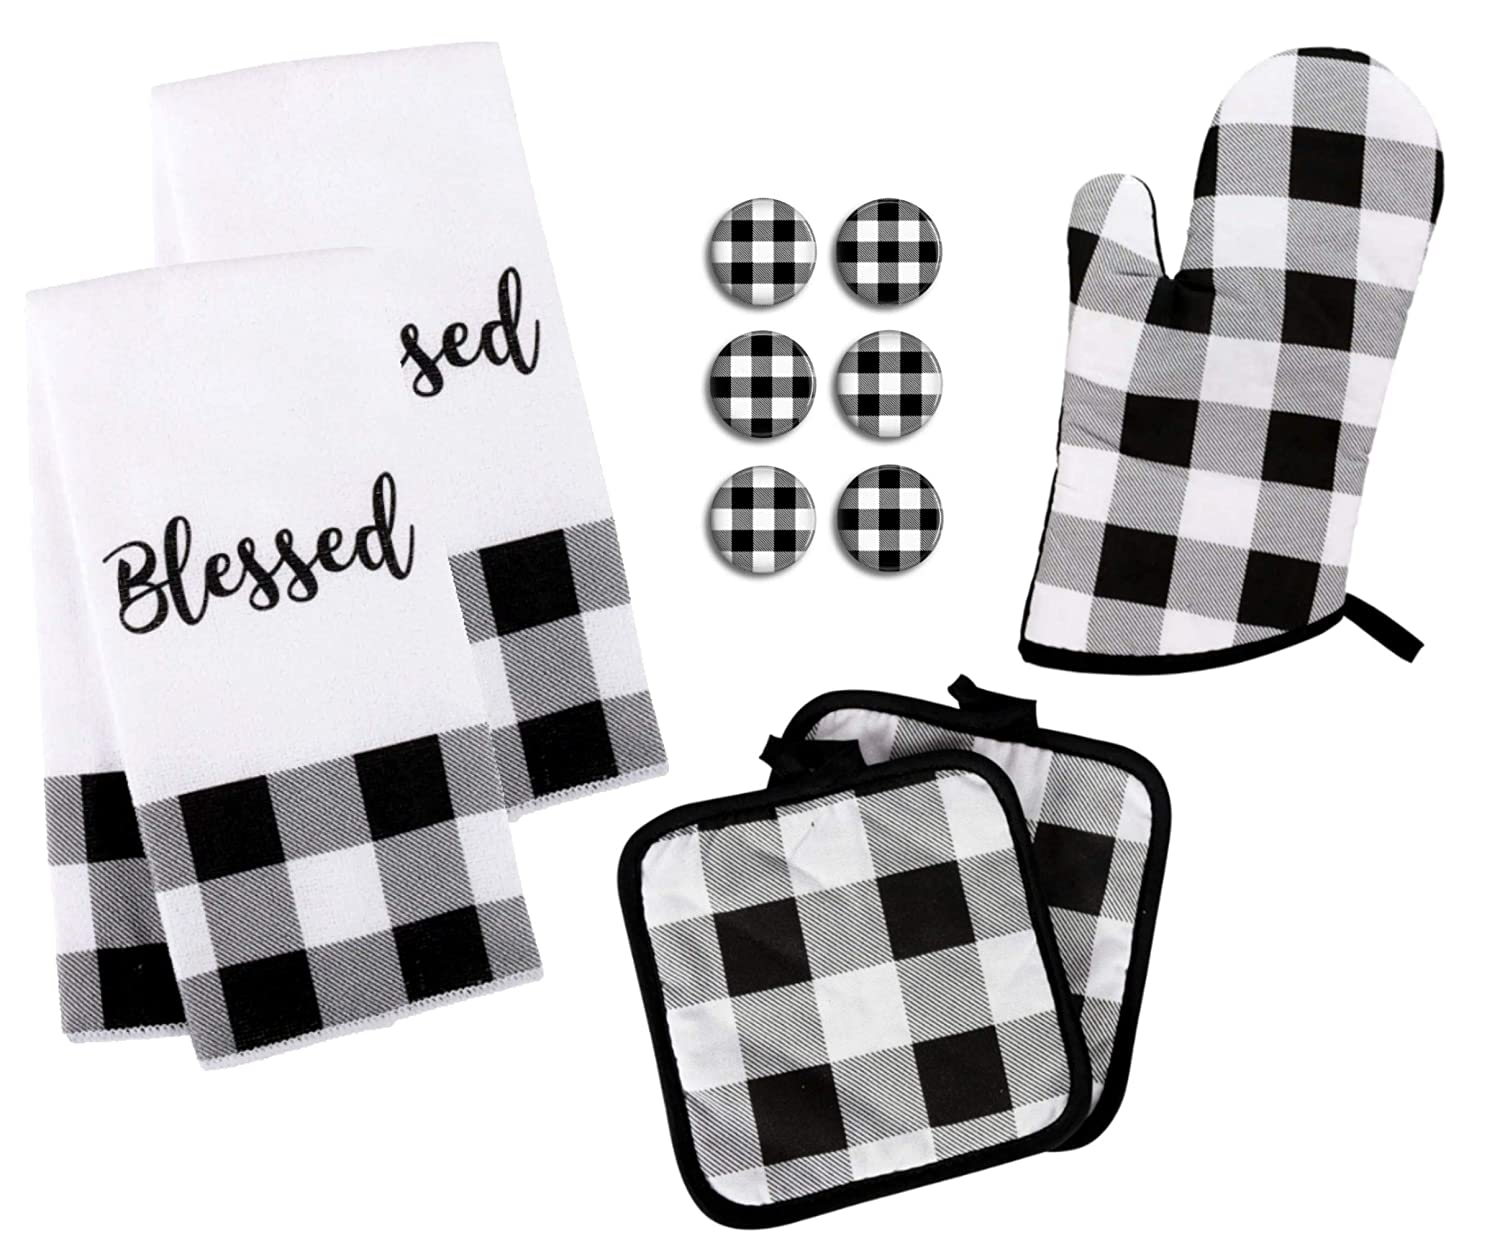 Buffalo Check Kitchen Towel Set with Pot Holders Oven Mitt and Set of 6 Refrigerator Magnets - Black and White Plaid - Modern Farmhouse Decor Gift Set (Towels & Potholder Set)